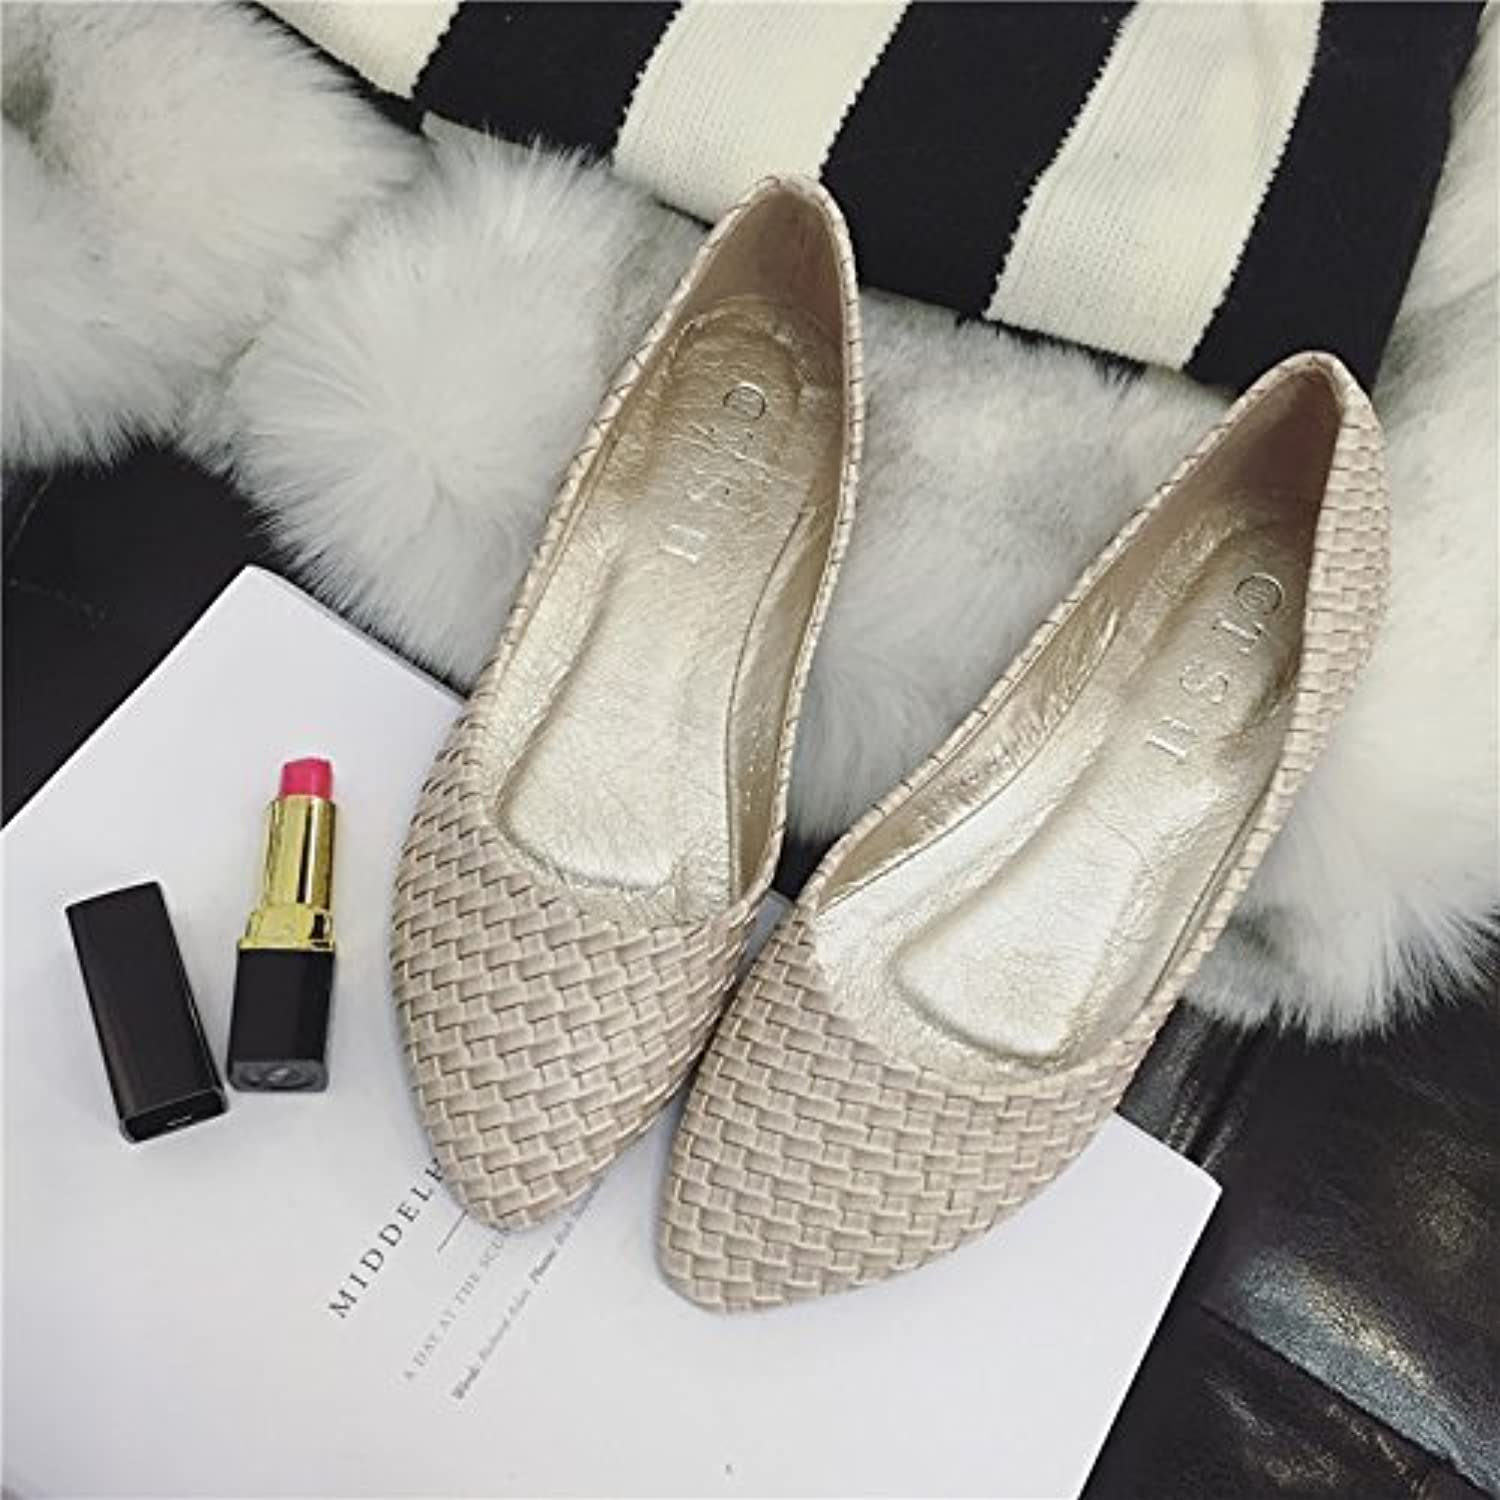 WYMBS Beste gift New retro braided light port female single shoe points with flat flat shoe women shoes